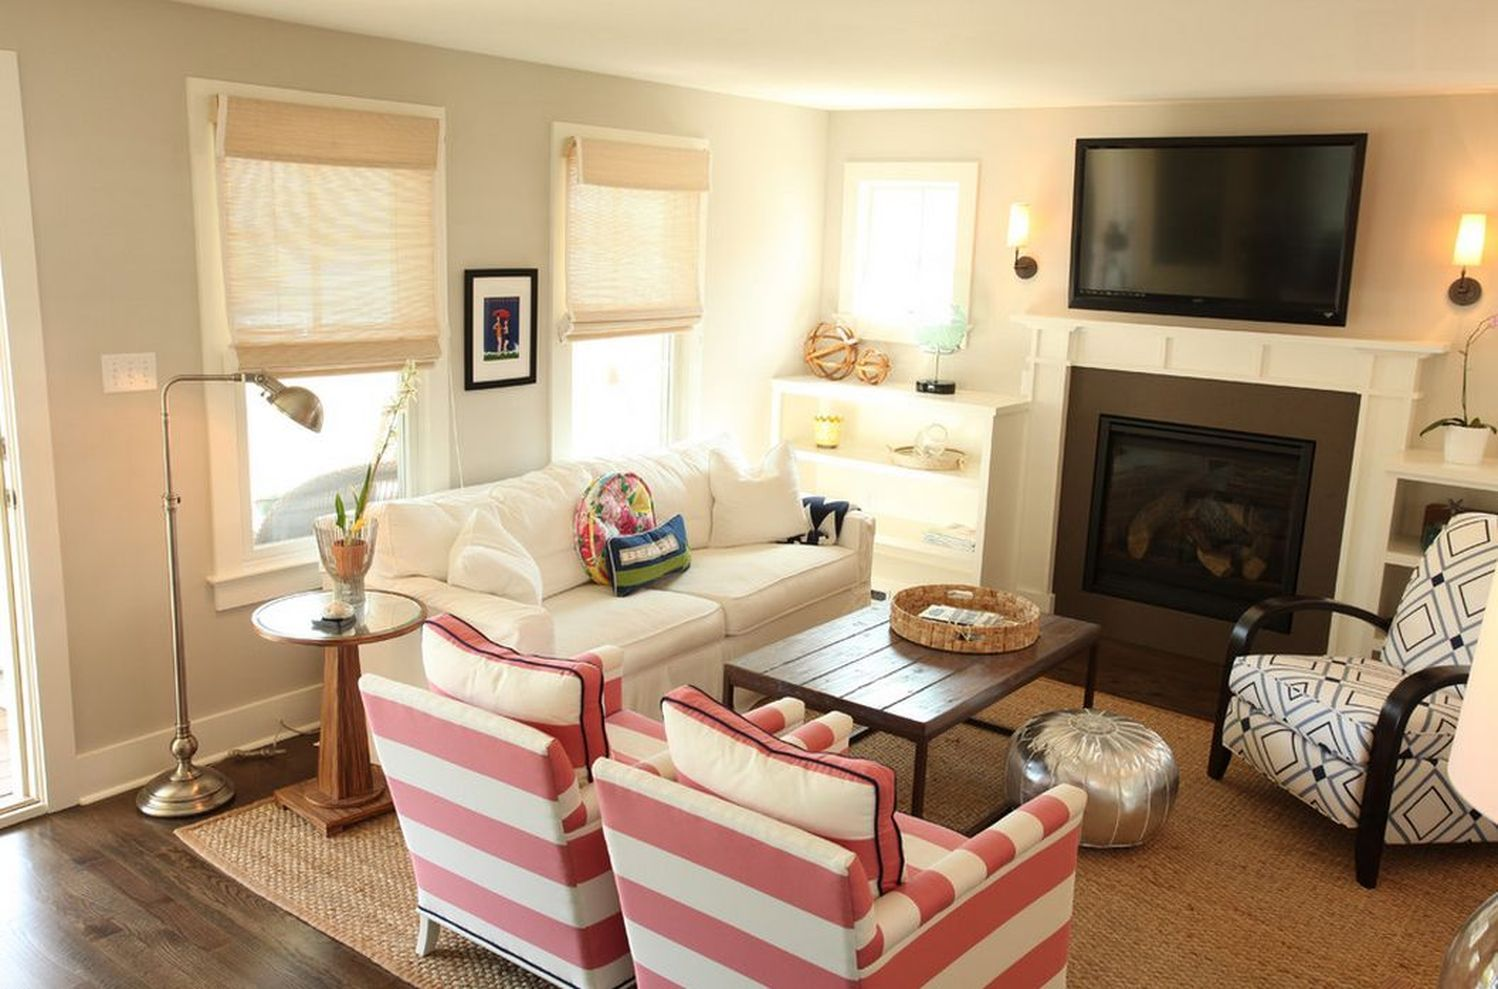 61 simple living room design ideas with tv living room on family picture wall ideas for living room furniture arrangements id=68749